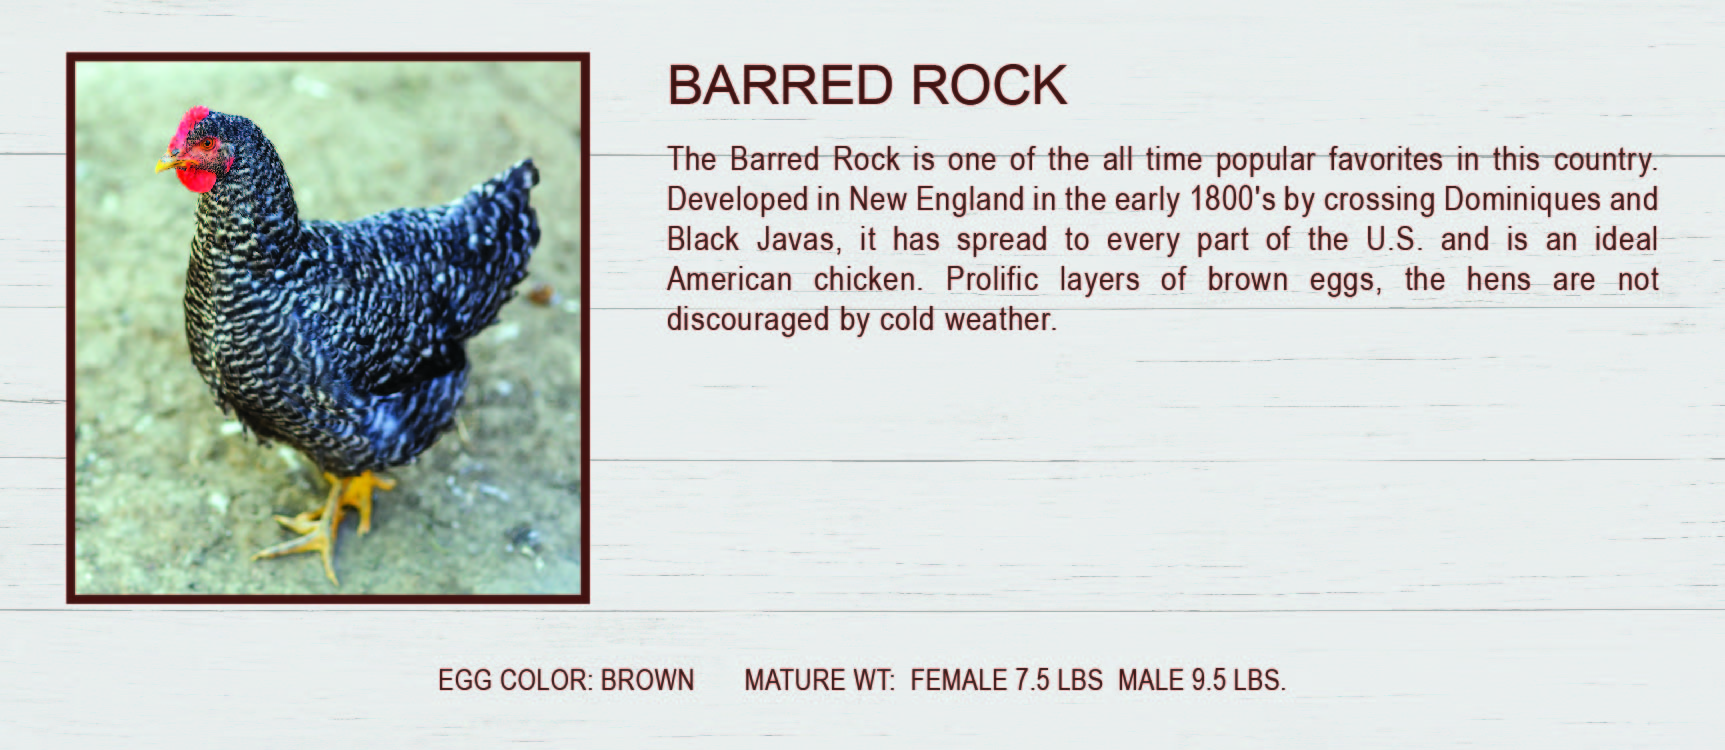 Barred Rock